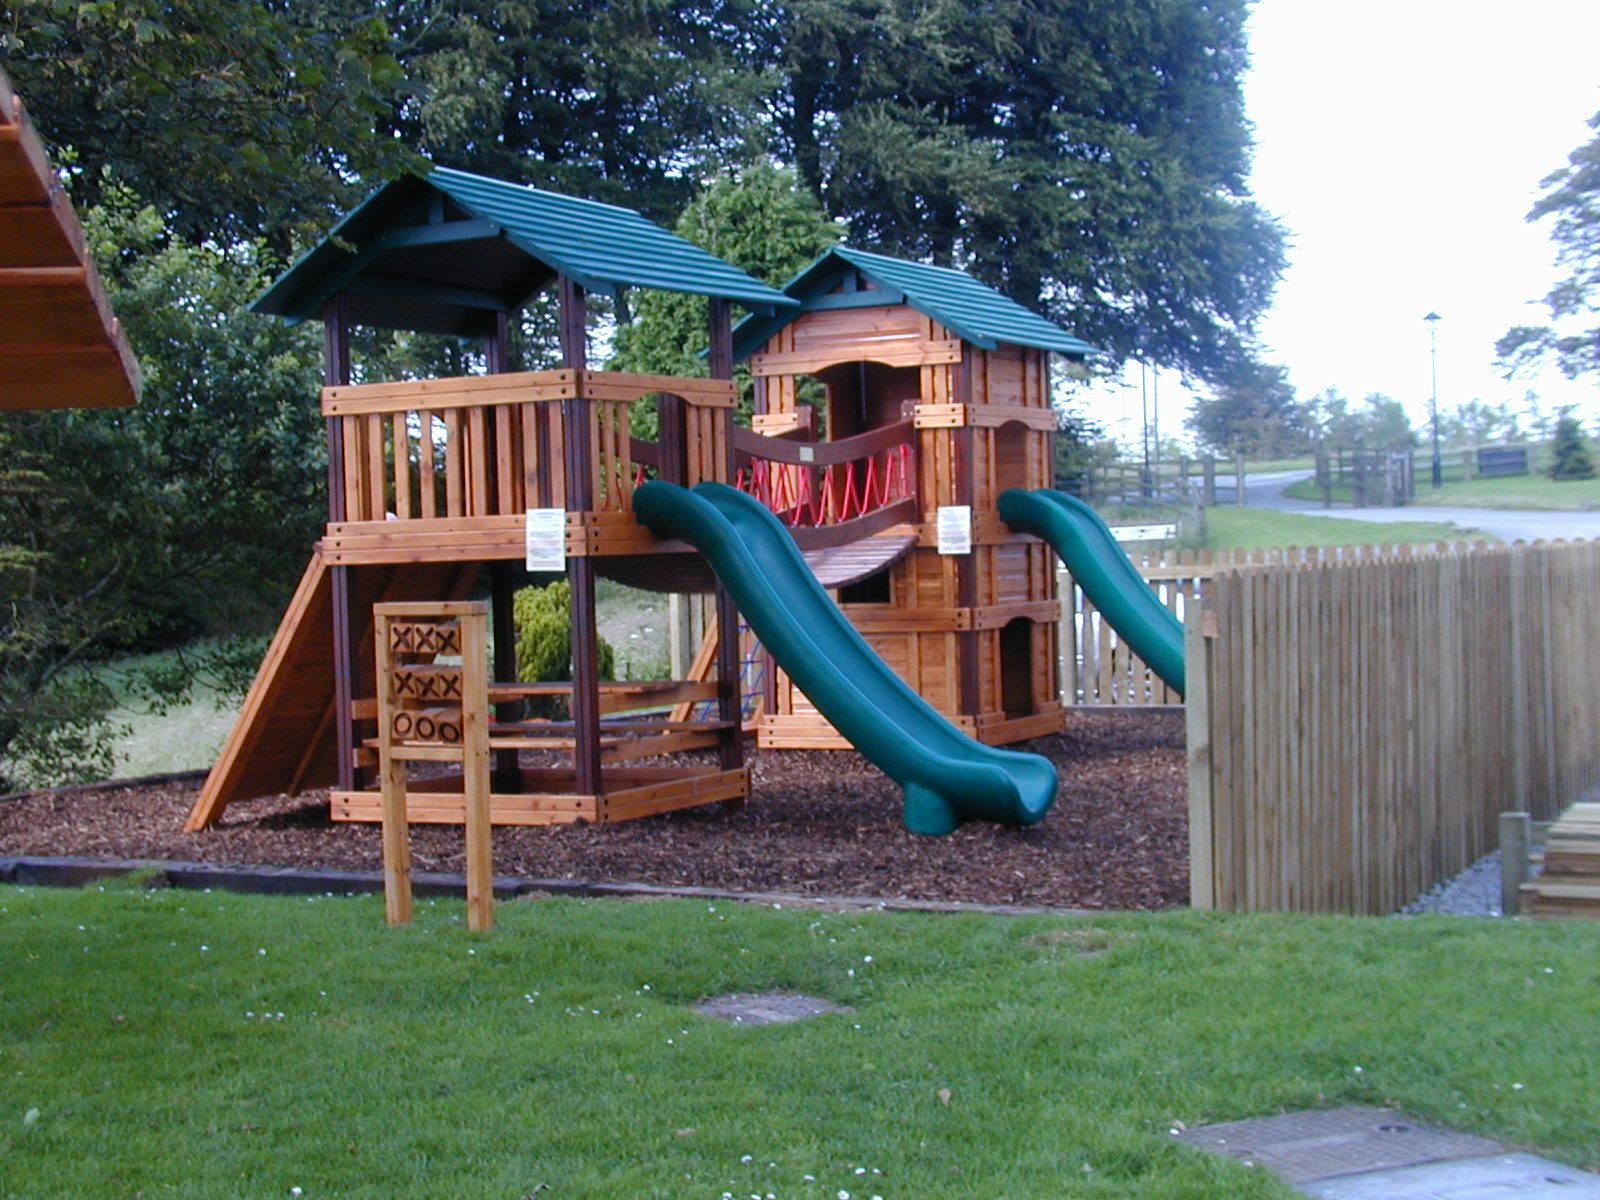 backyard kids play area ideas we also have an exciting